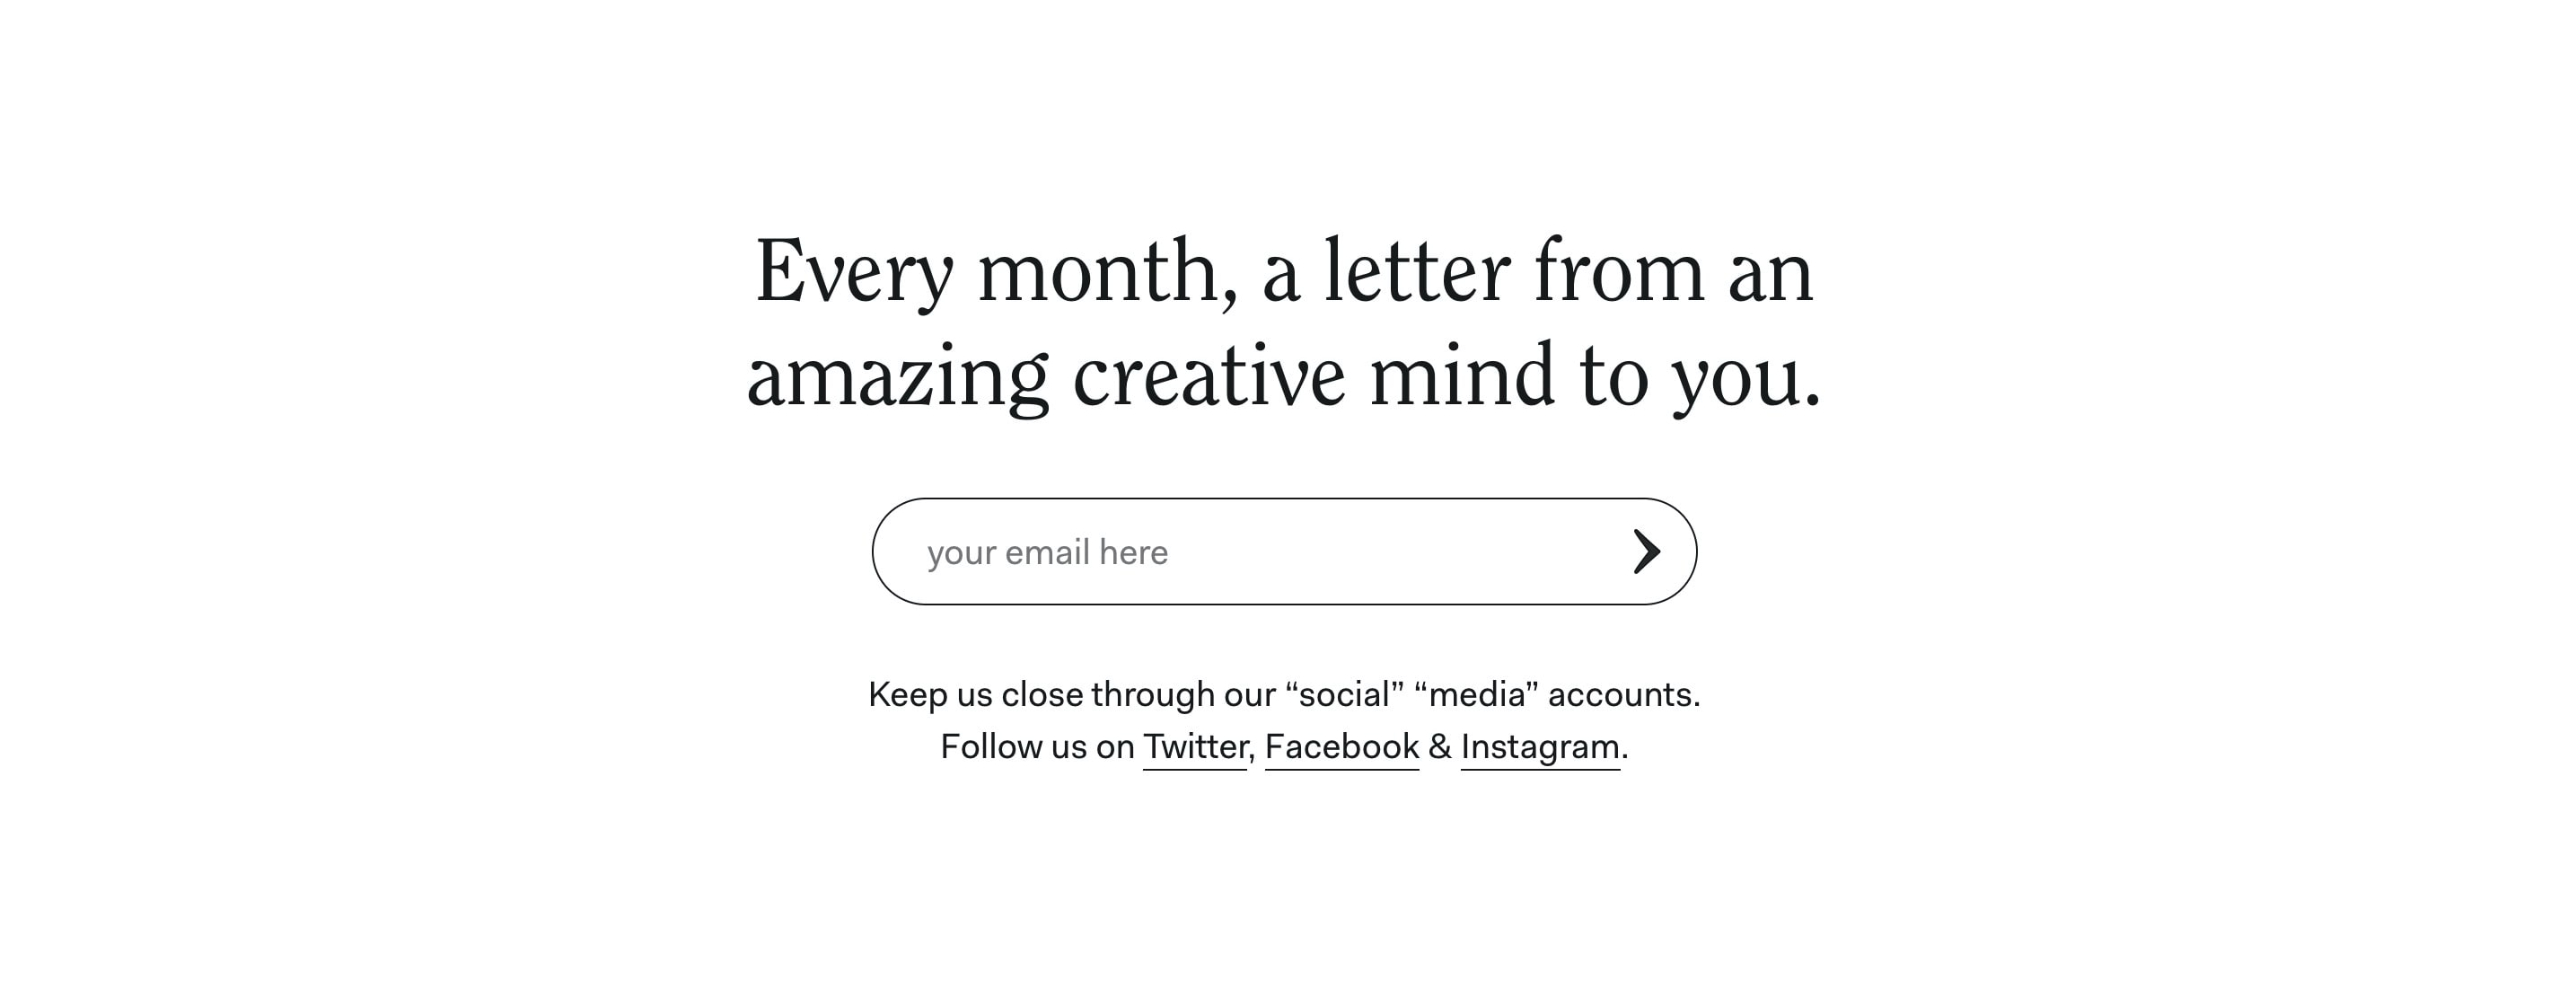 Blog Post Full-Width Subscribe Form